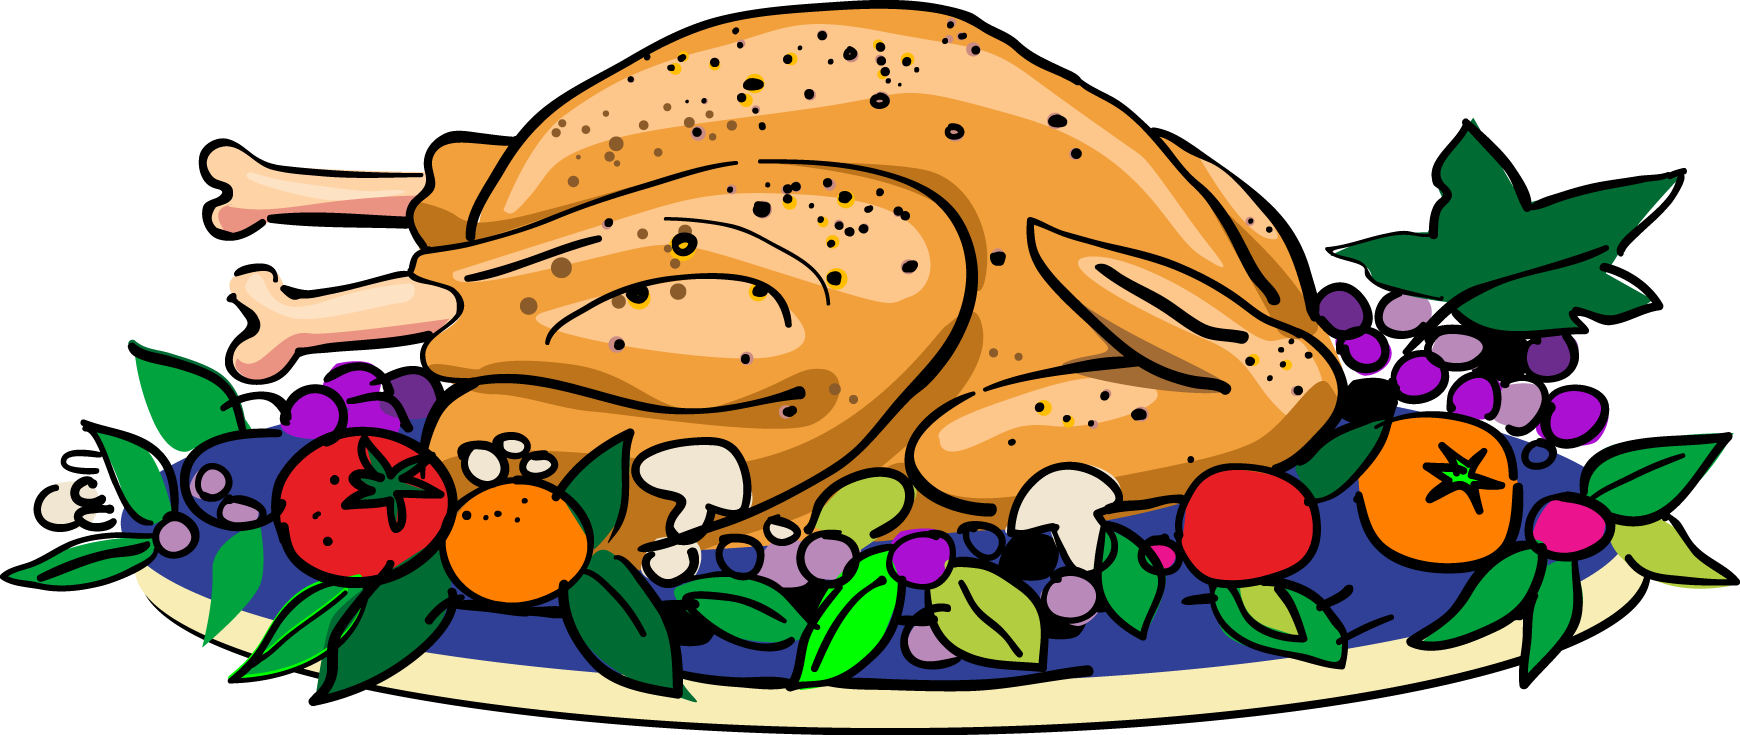 Chicken clipart chicken dish. Diner food platter free